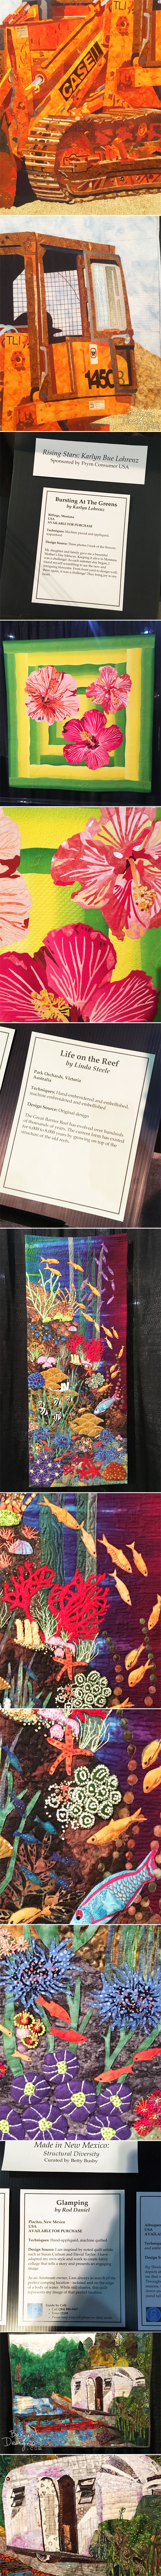 From the Balzer Designs Blog: Quilt Festival 2017: Part Five